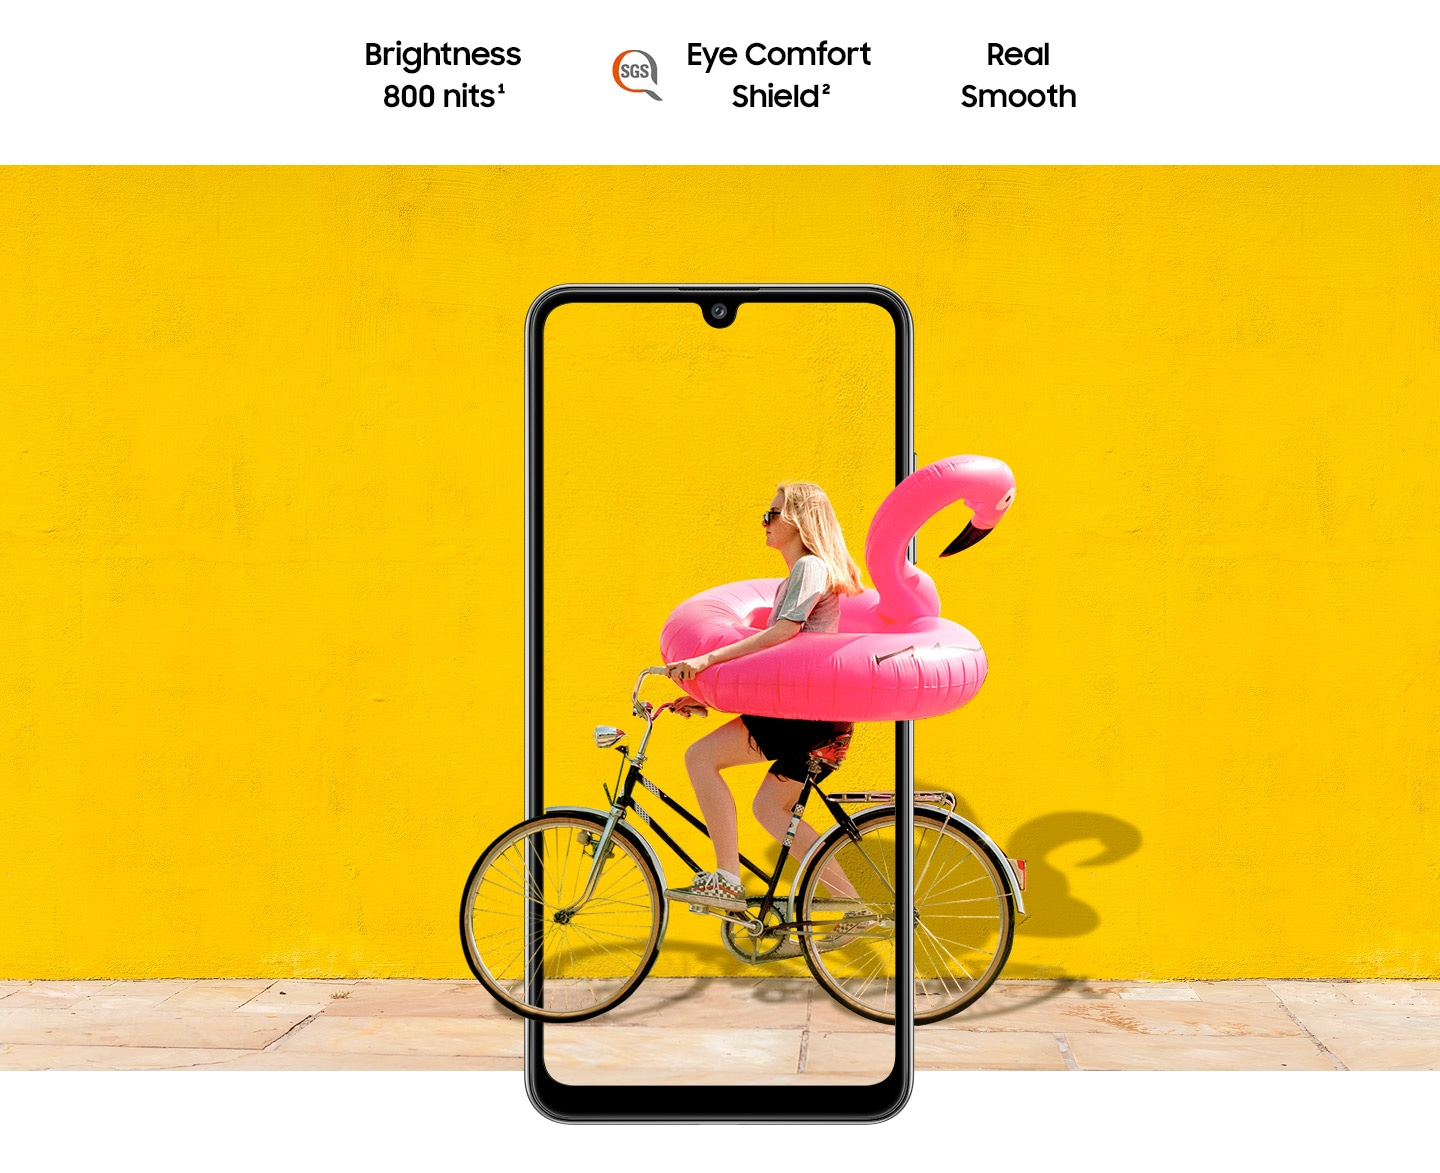 A woman on bike behind Galaxy A32. The picture goes the phone display's edges to represent its immersive view. Text says Brightness 800 nits, Eye Comfort Shield, with the SGS logo and Real Smooth.